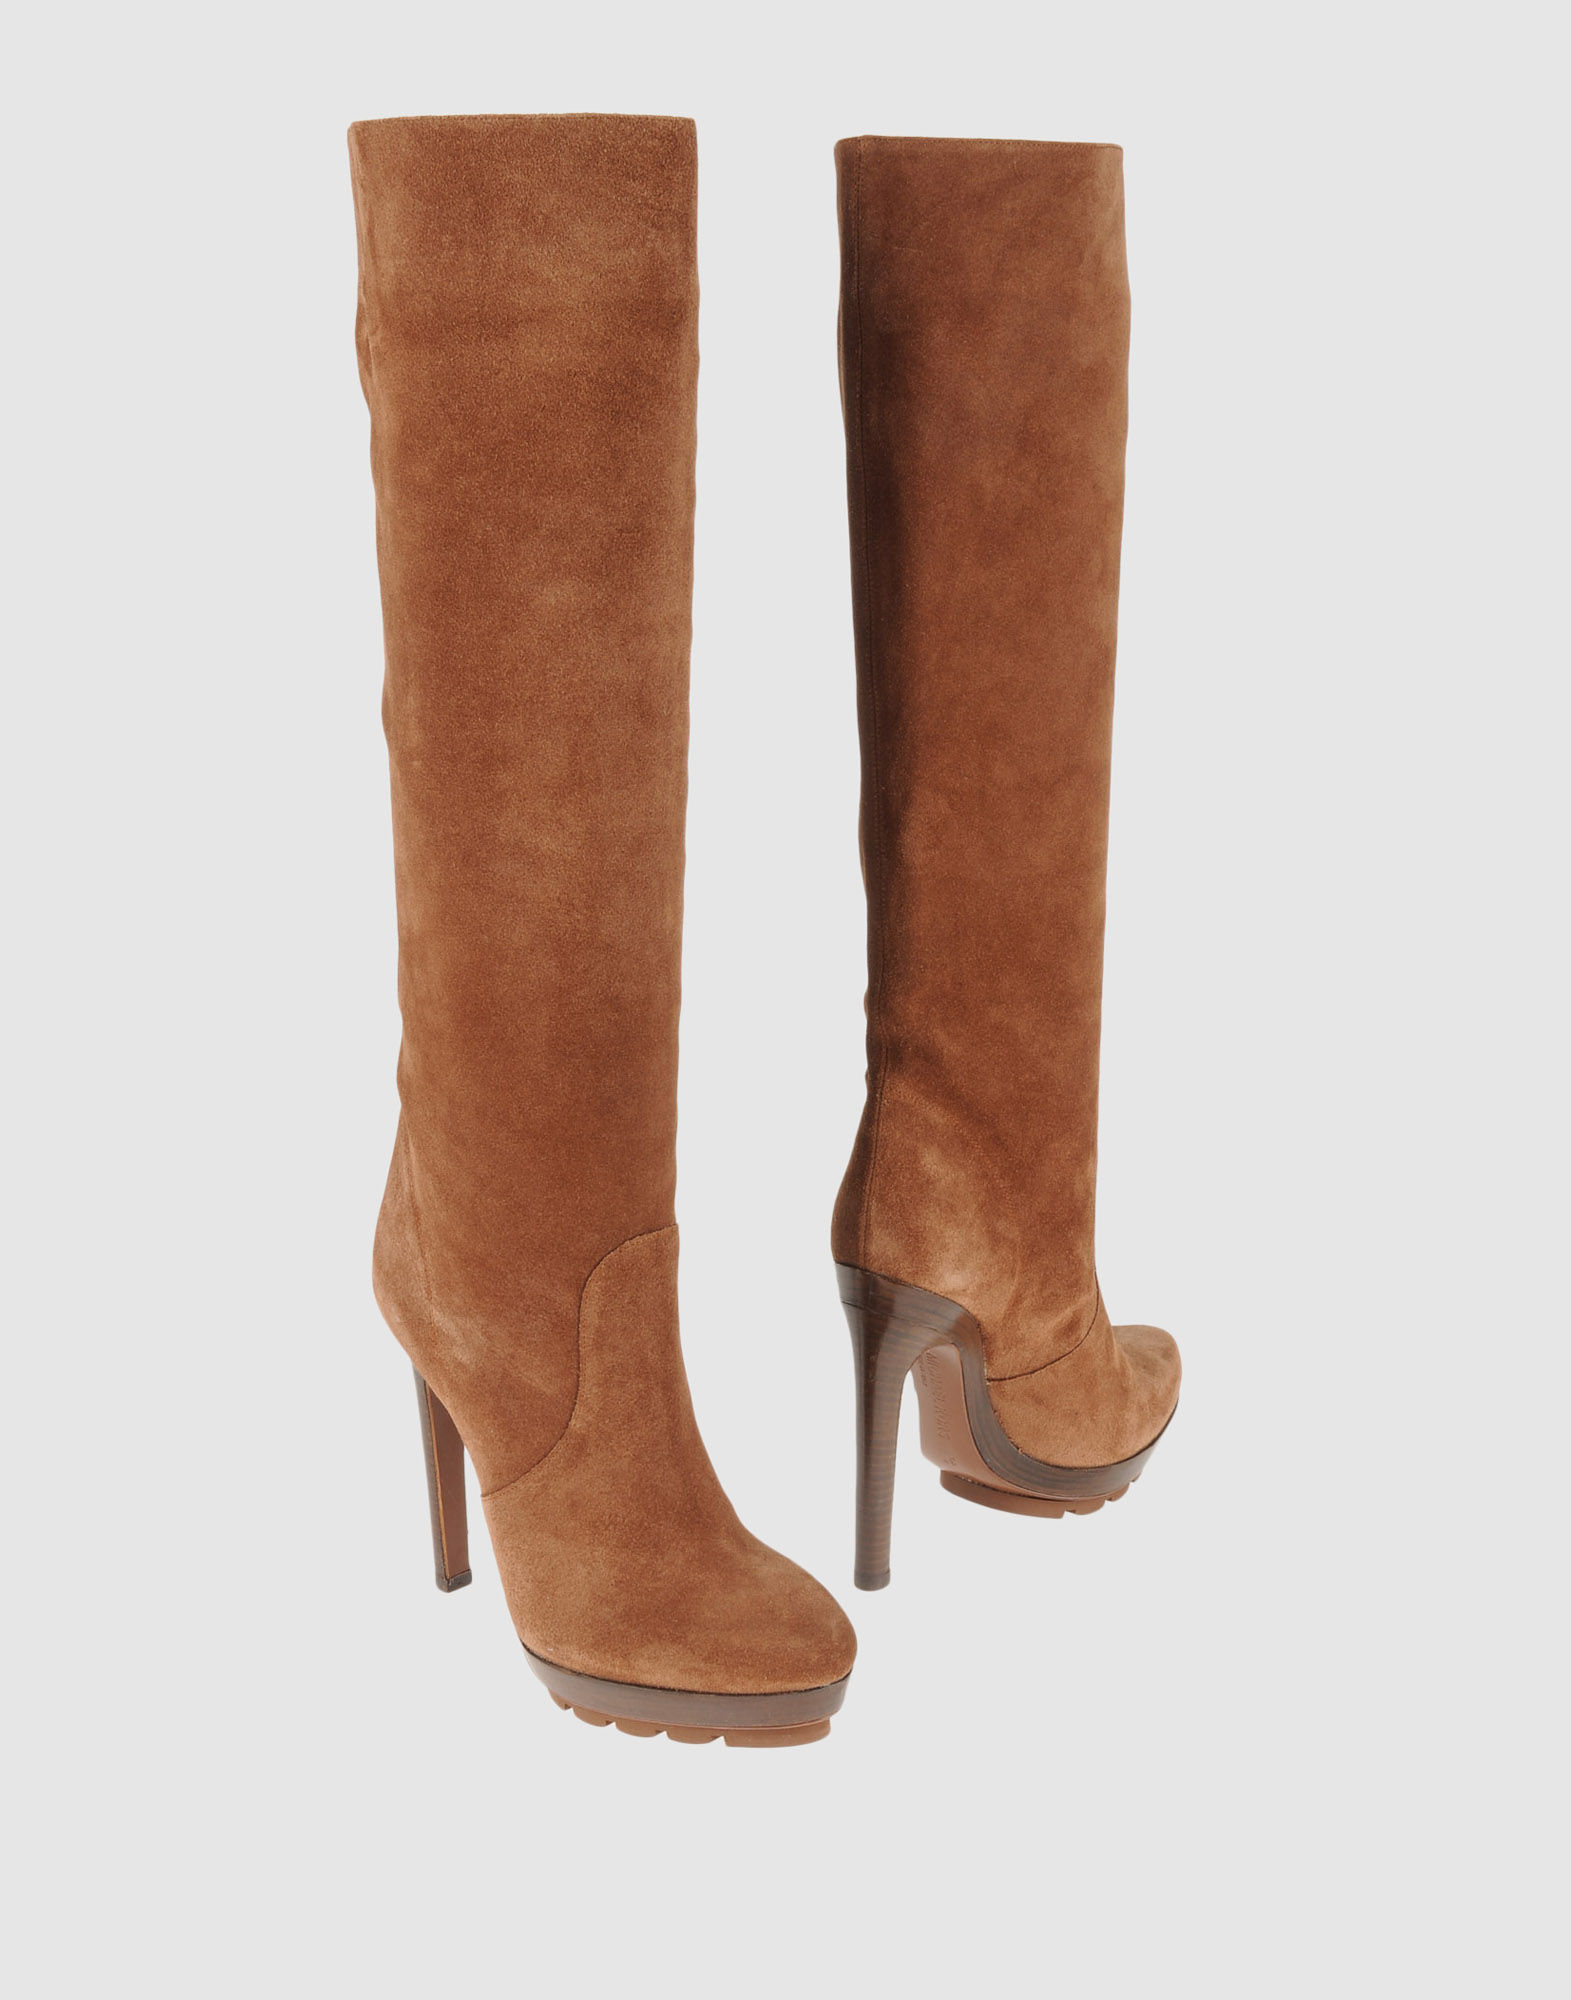 michael kors high heeled boots in brown lyst